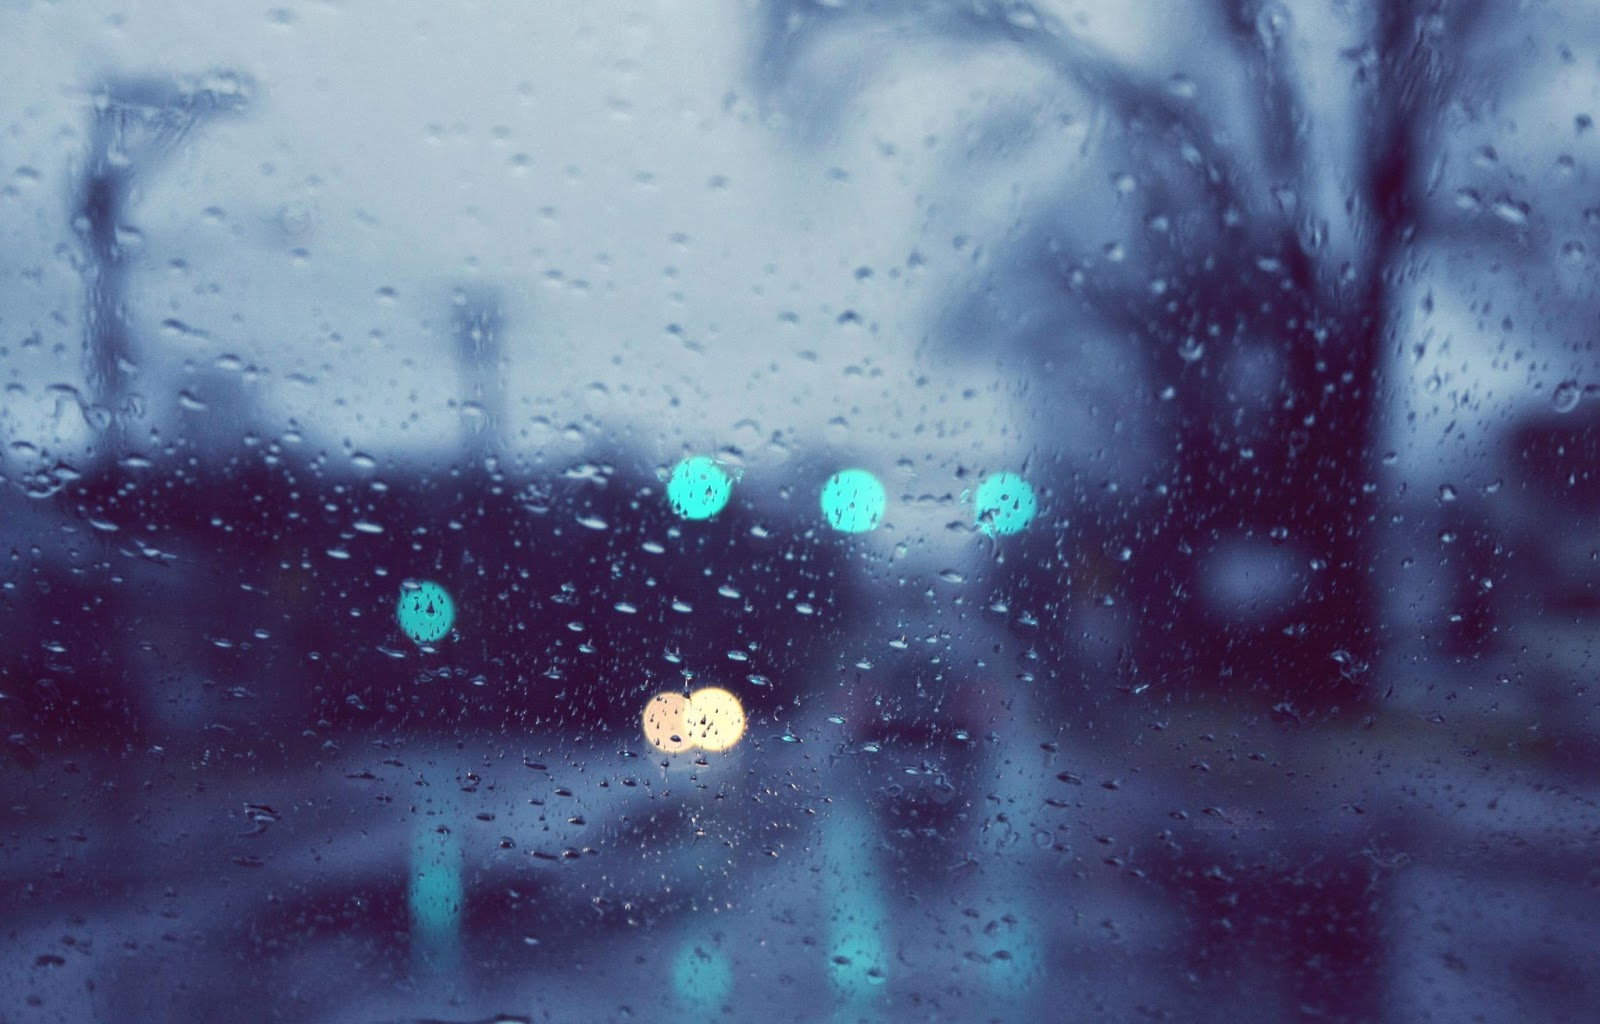 Rain Photography Hd Wallpapers High Definition Free